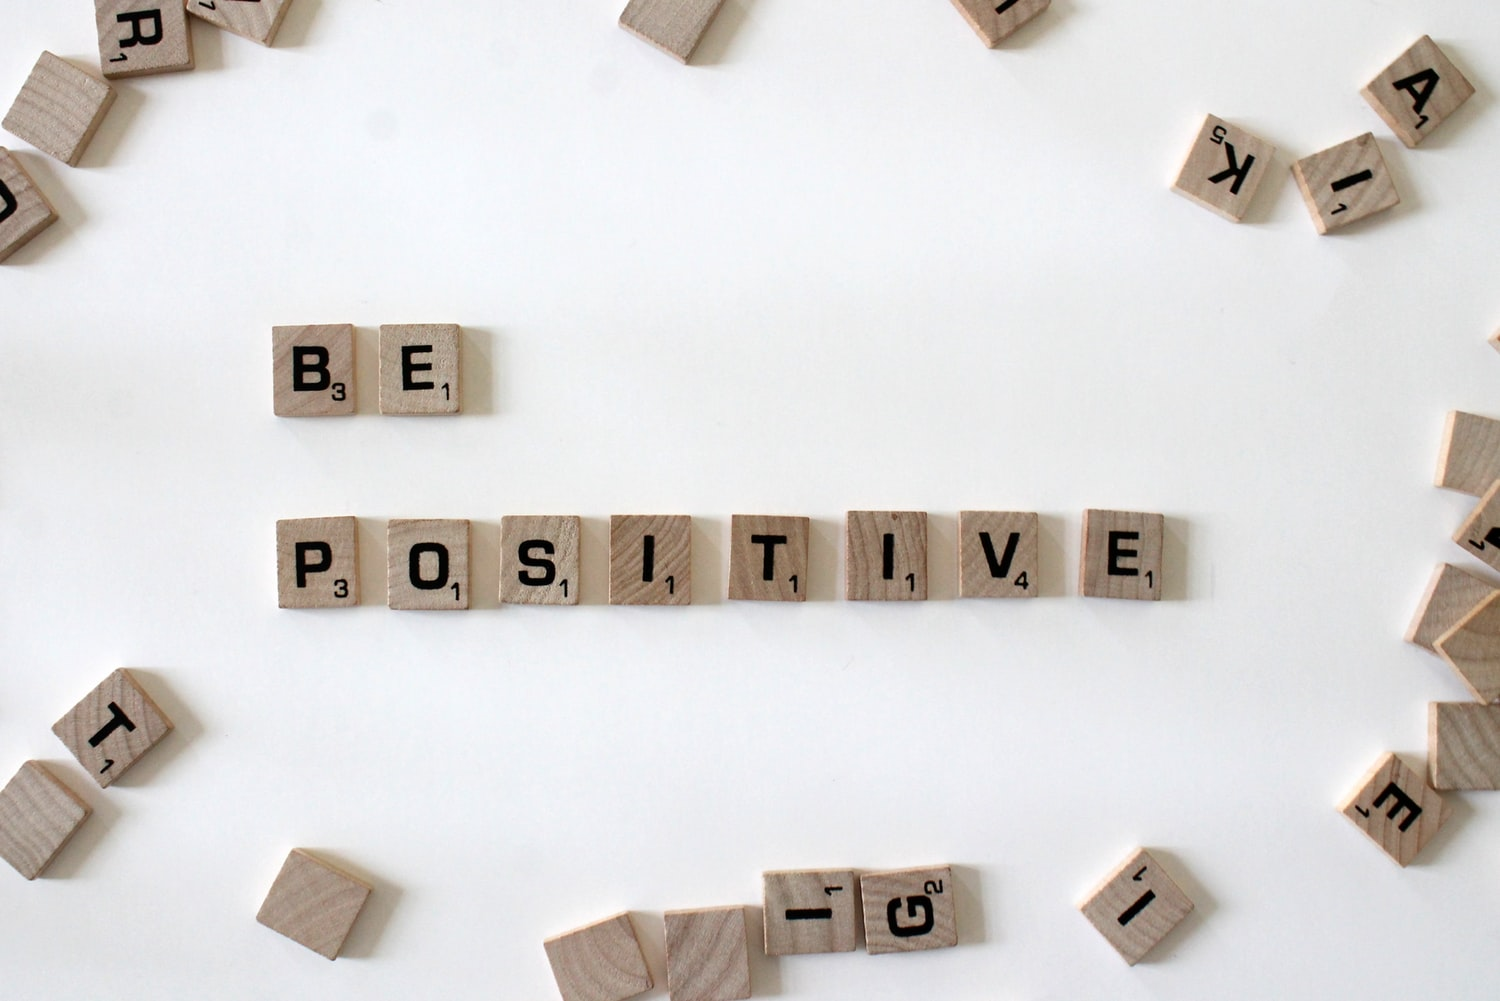 Be Positive spelled out from Scrabble game letters - positive mindset